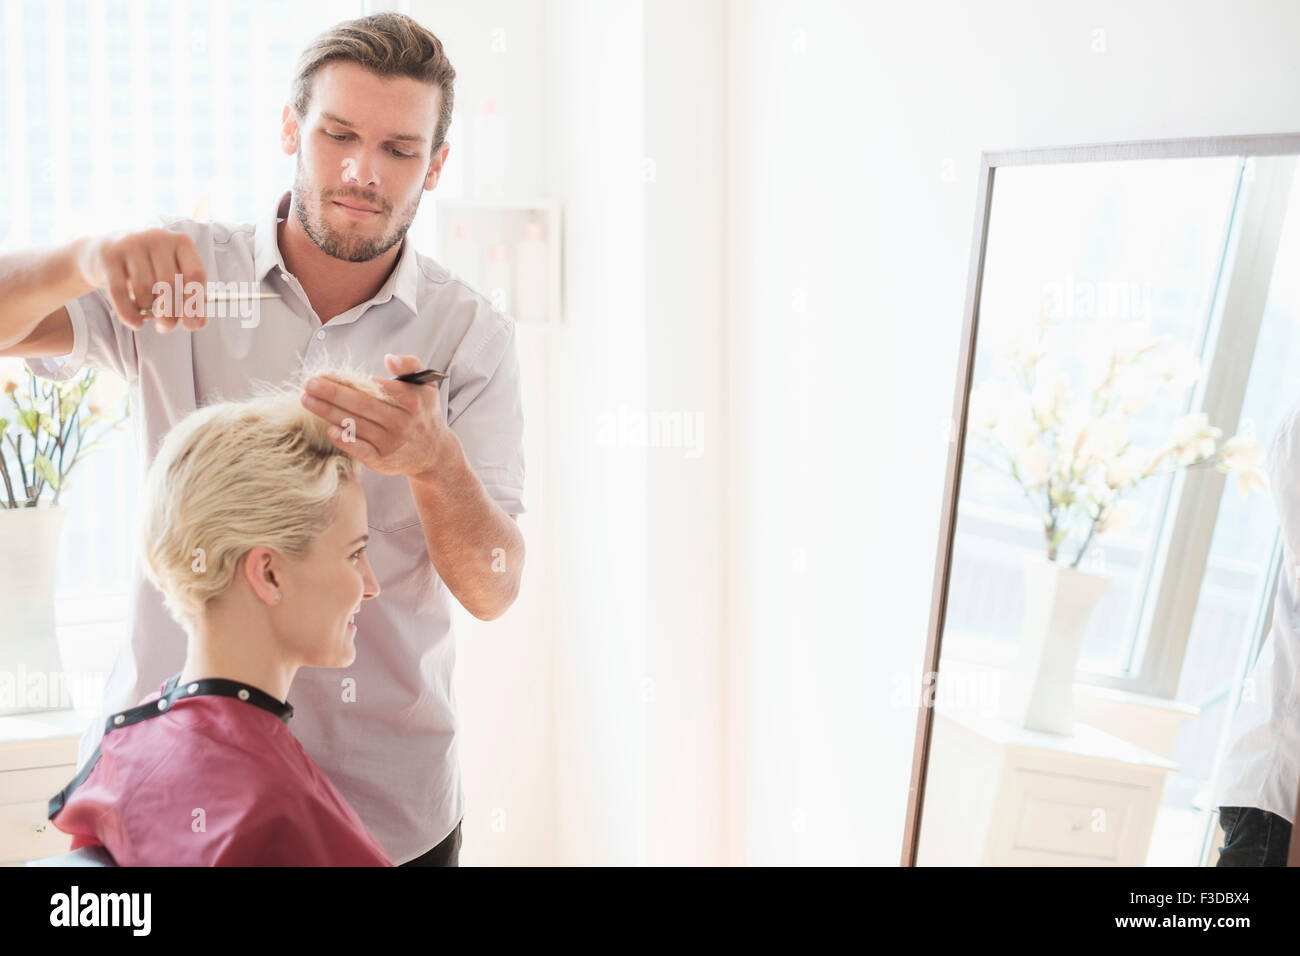 Hairdresser cutting woman's hair - Stock Image